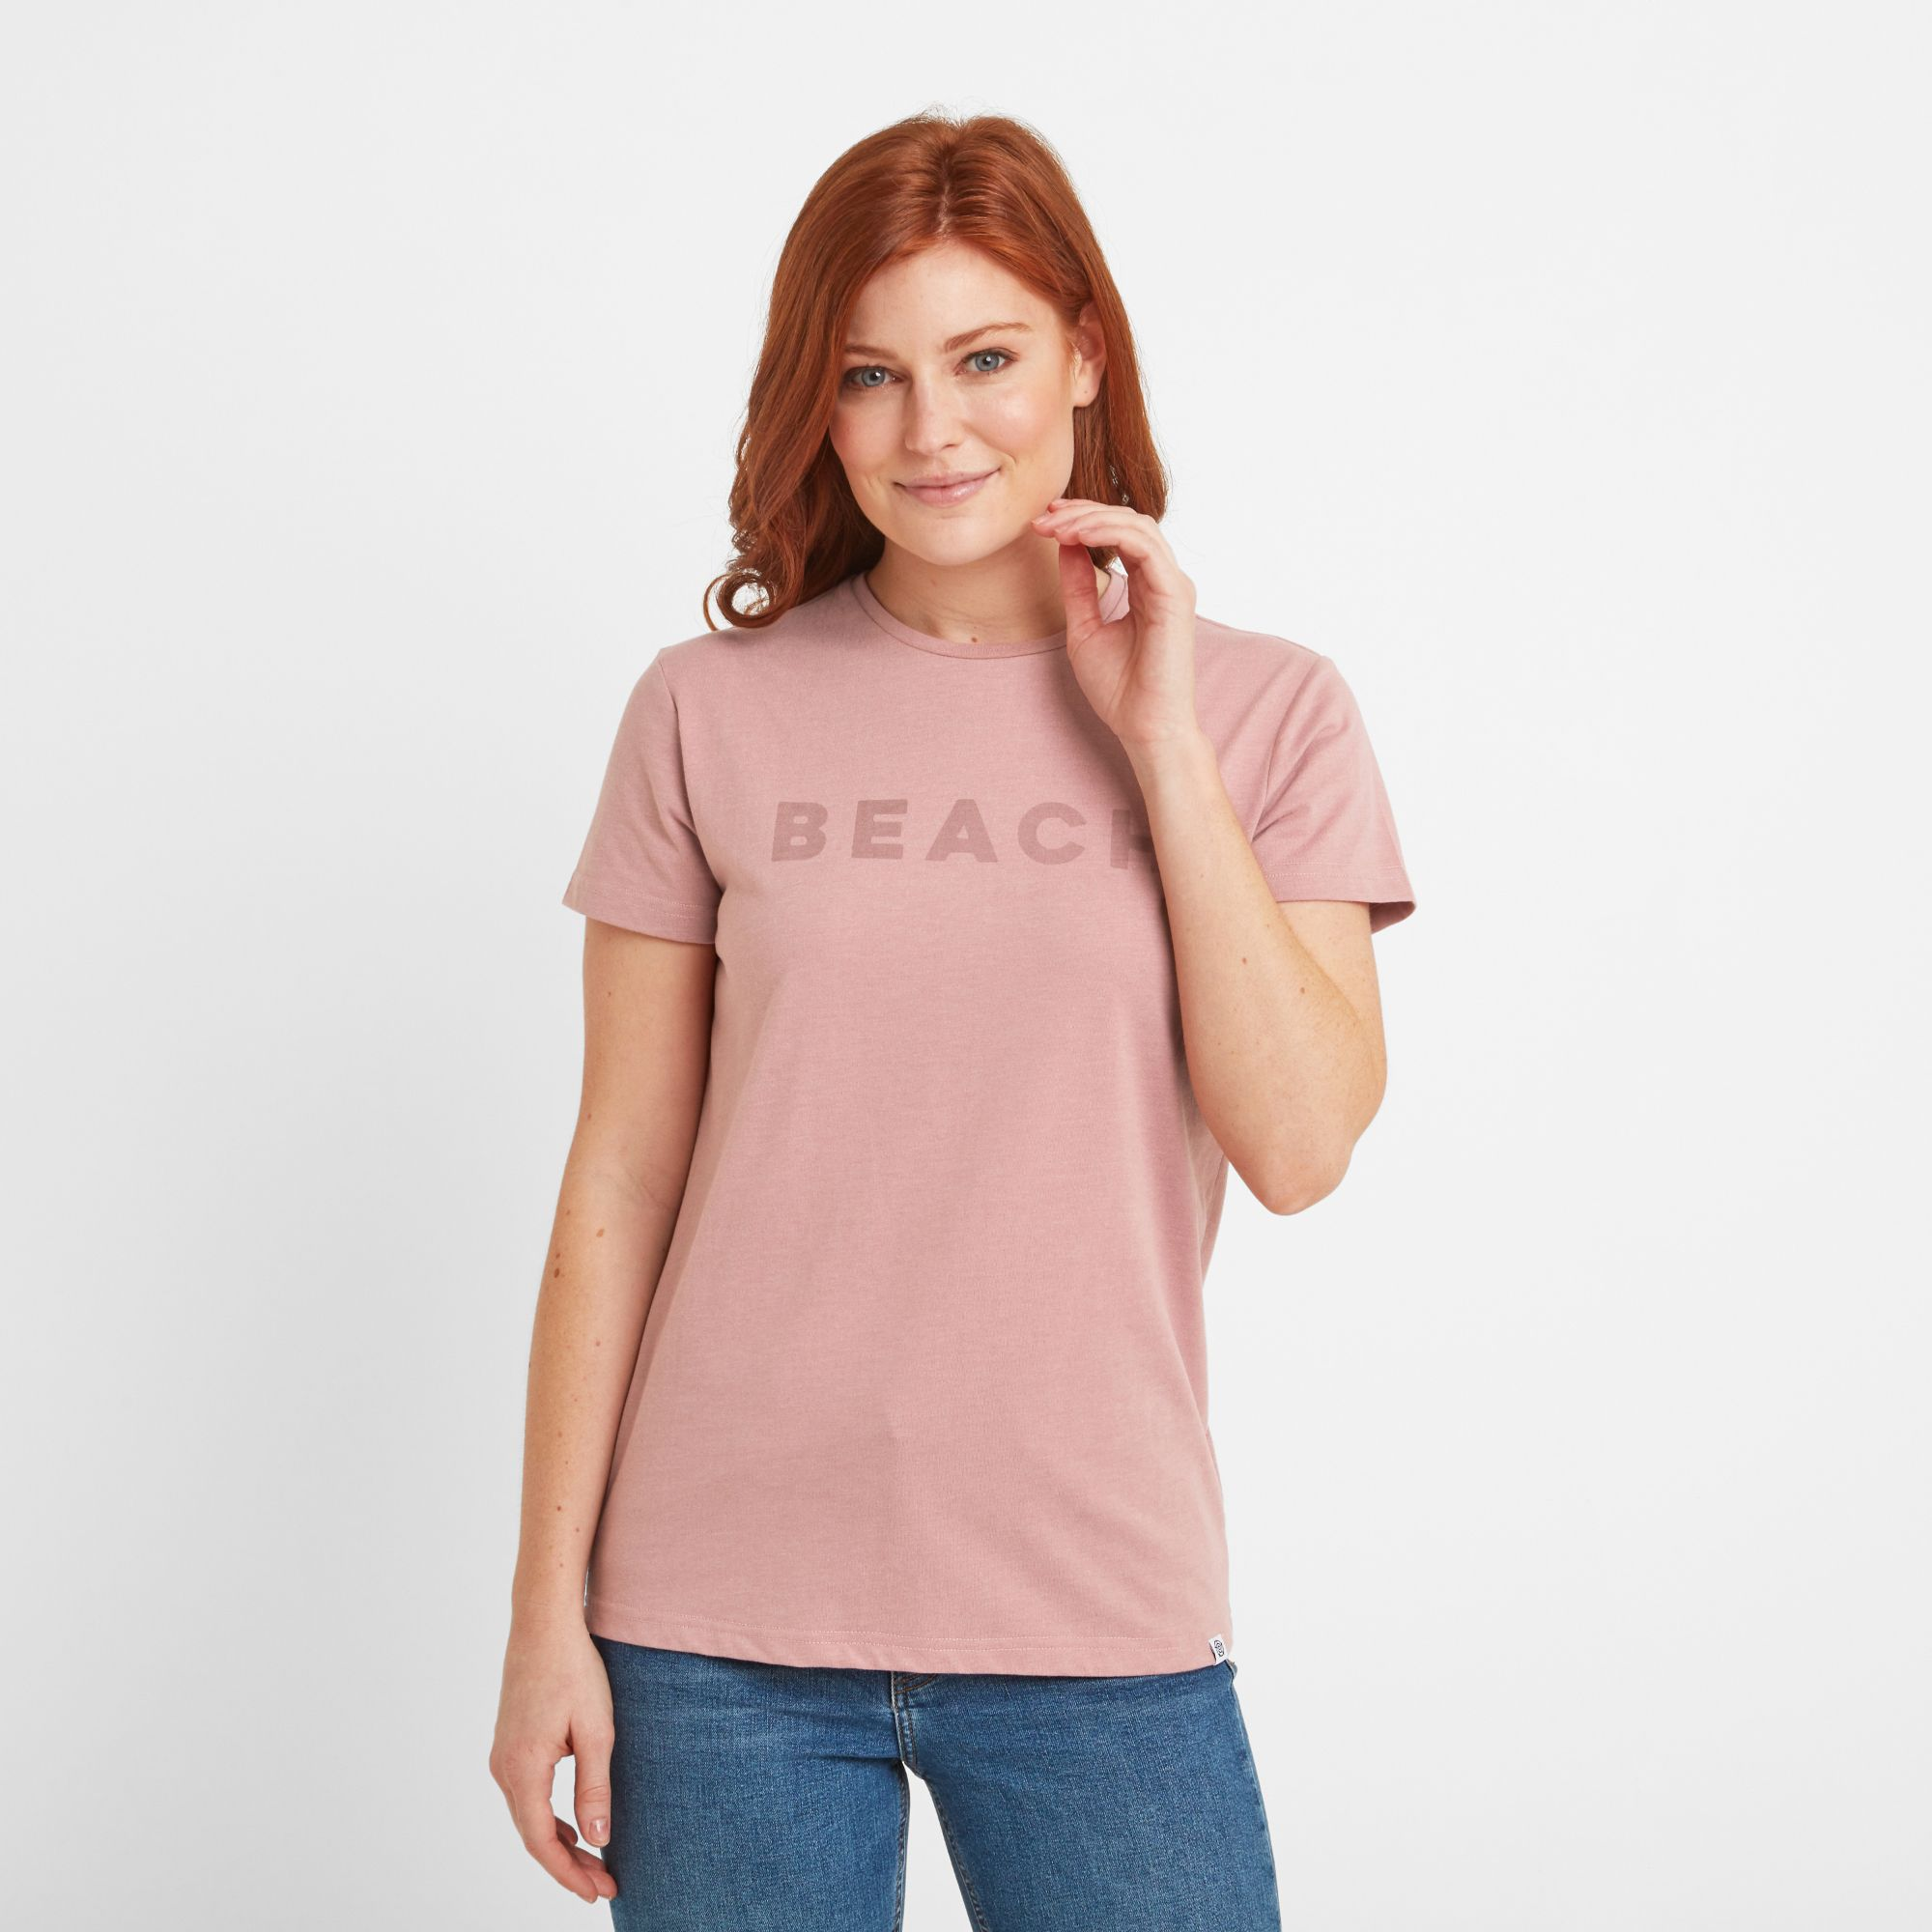 Esther Womens T-Shirt Faded Pink